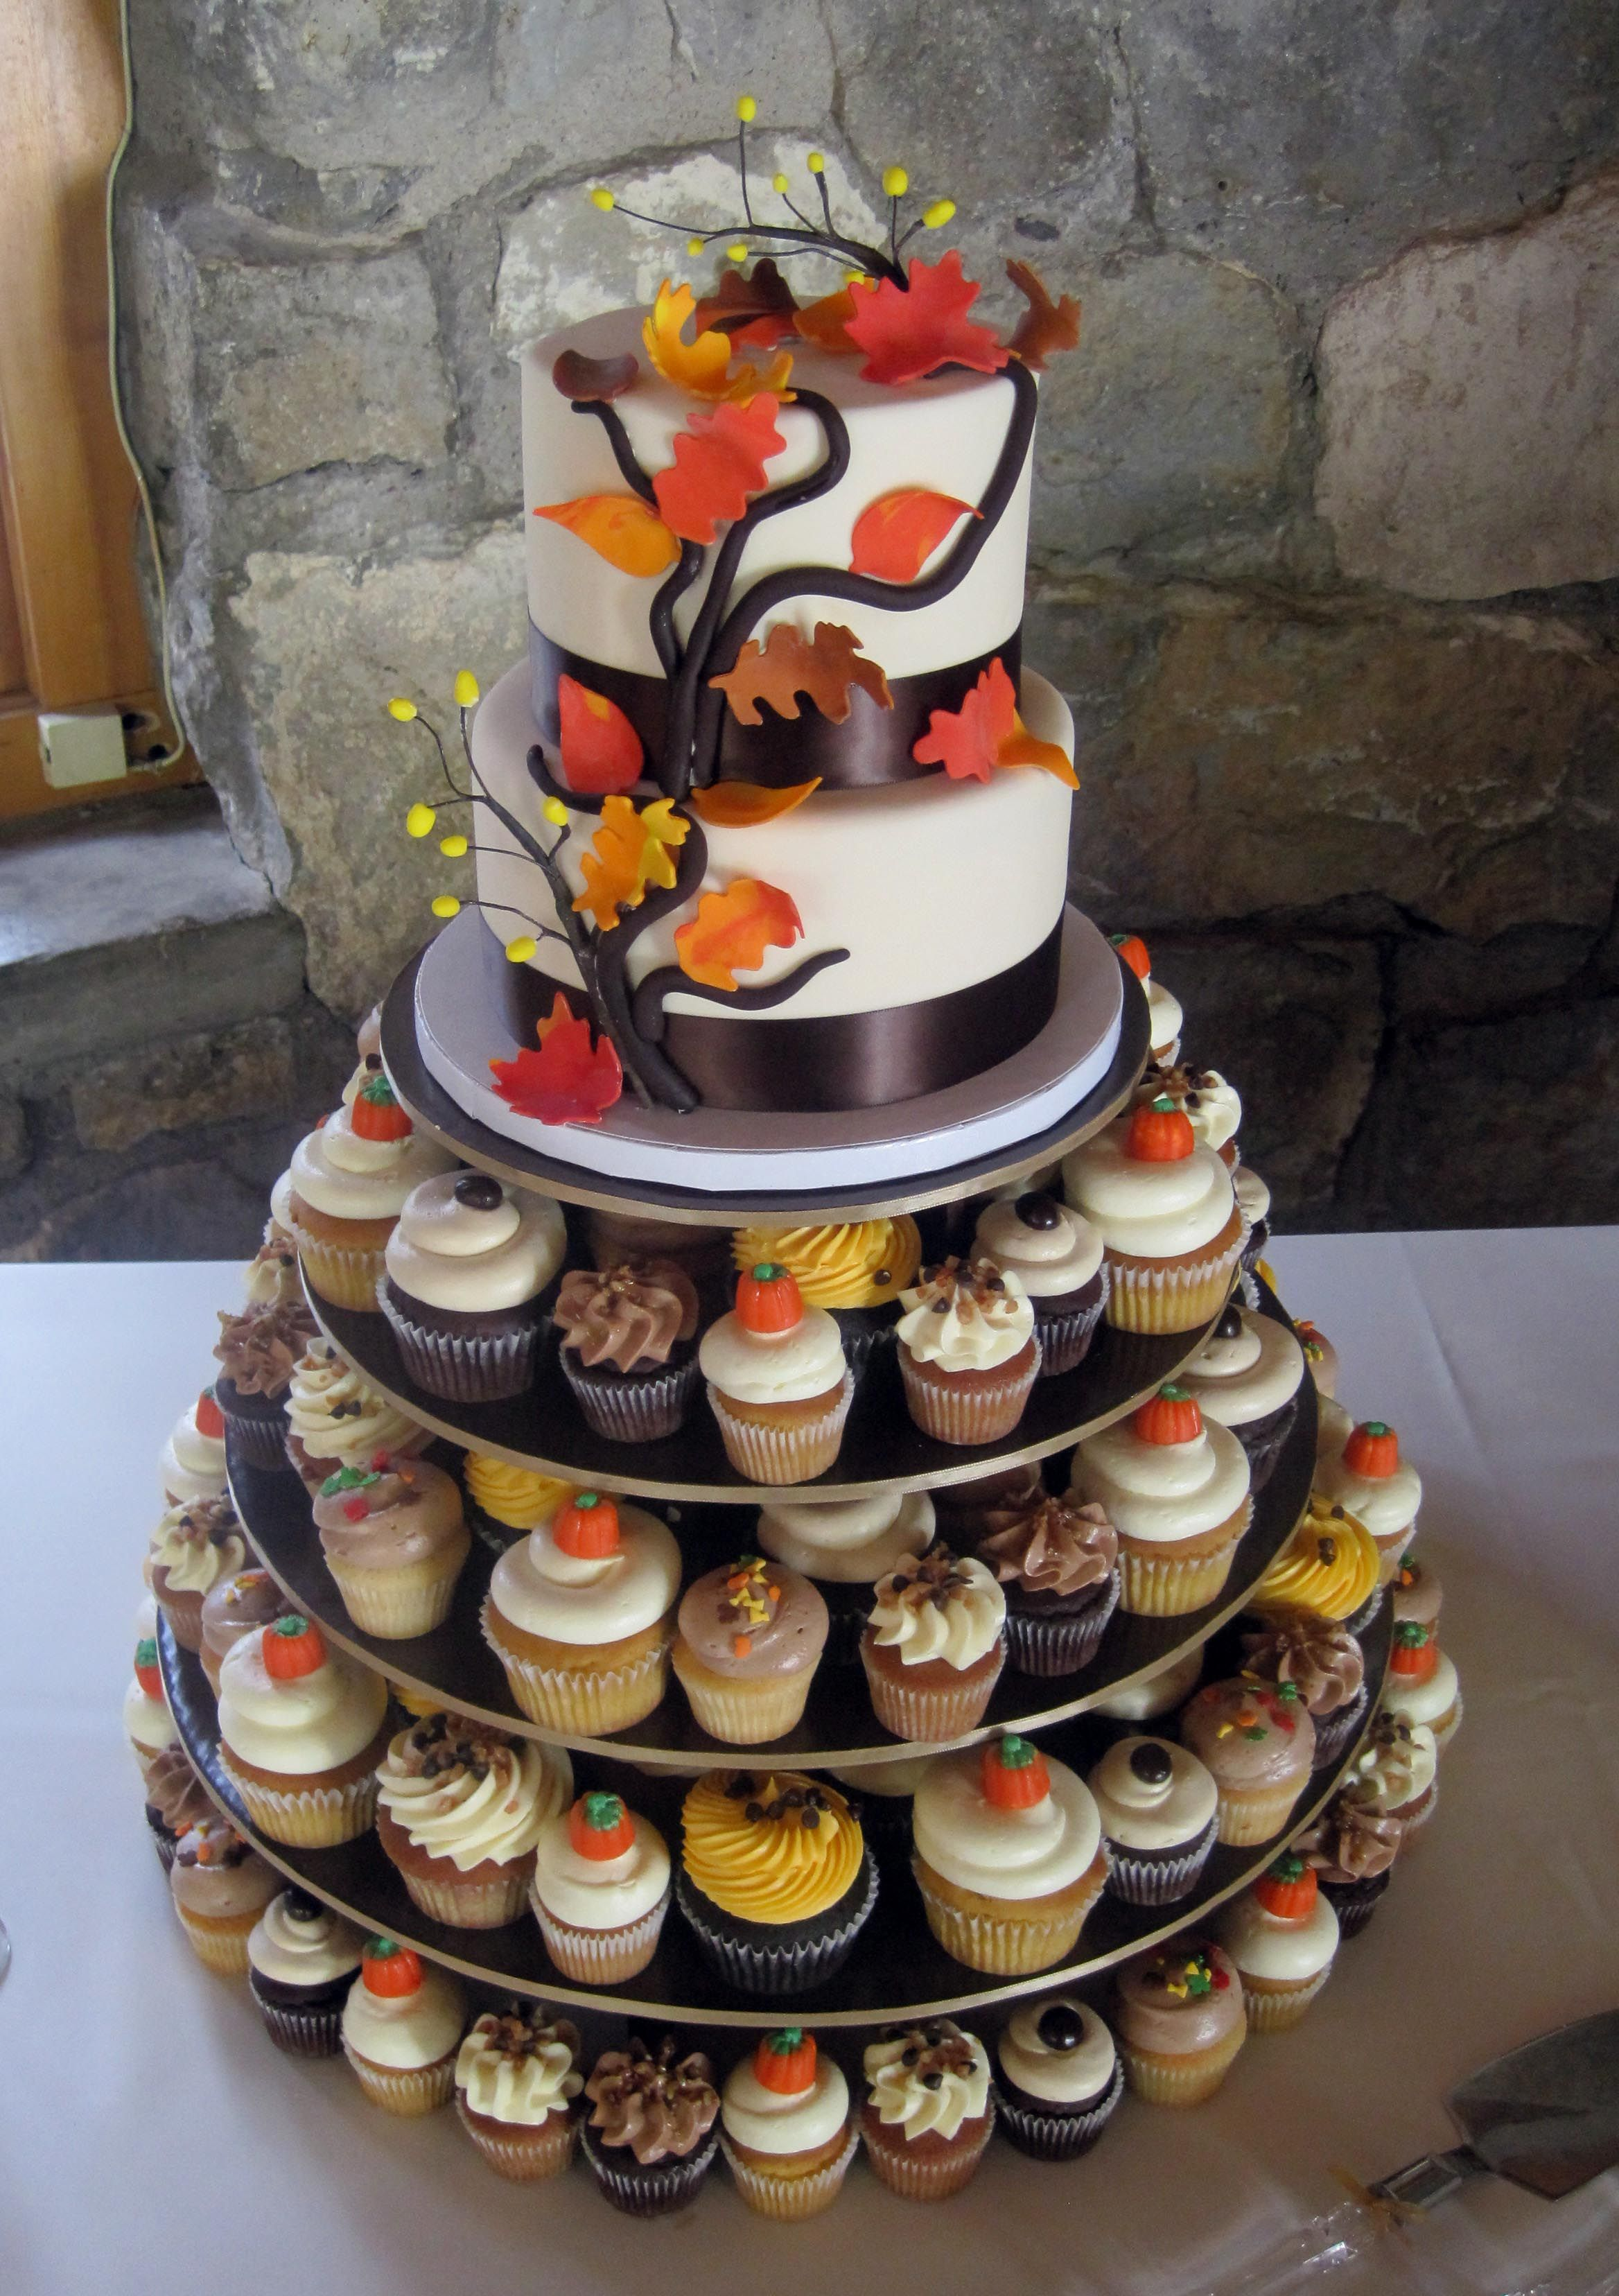 2 Tier Autumn Cutting Cake And Assorted Cupcakes